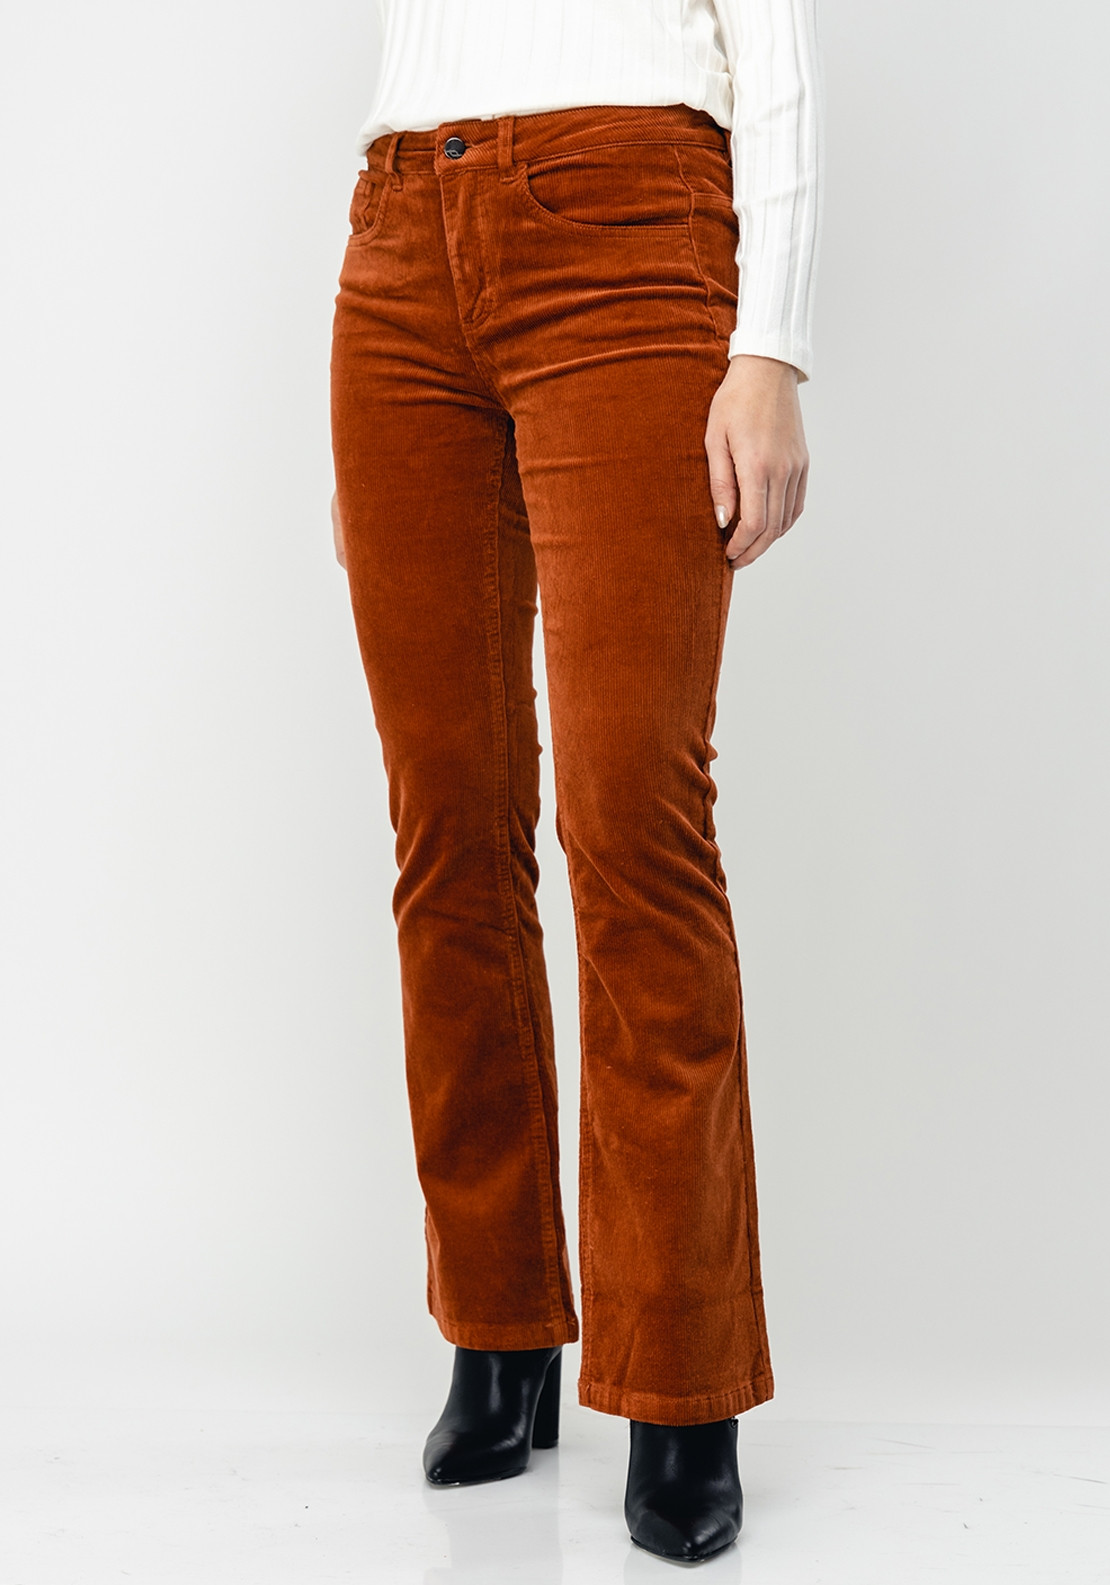 new collection new appearance online retailer Fransa Flared Leg Corduroy Trousers, Rust